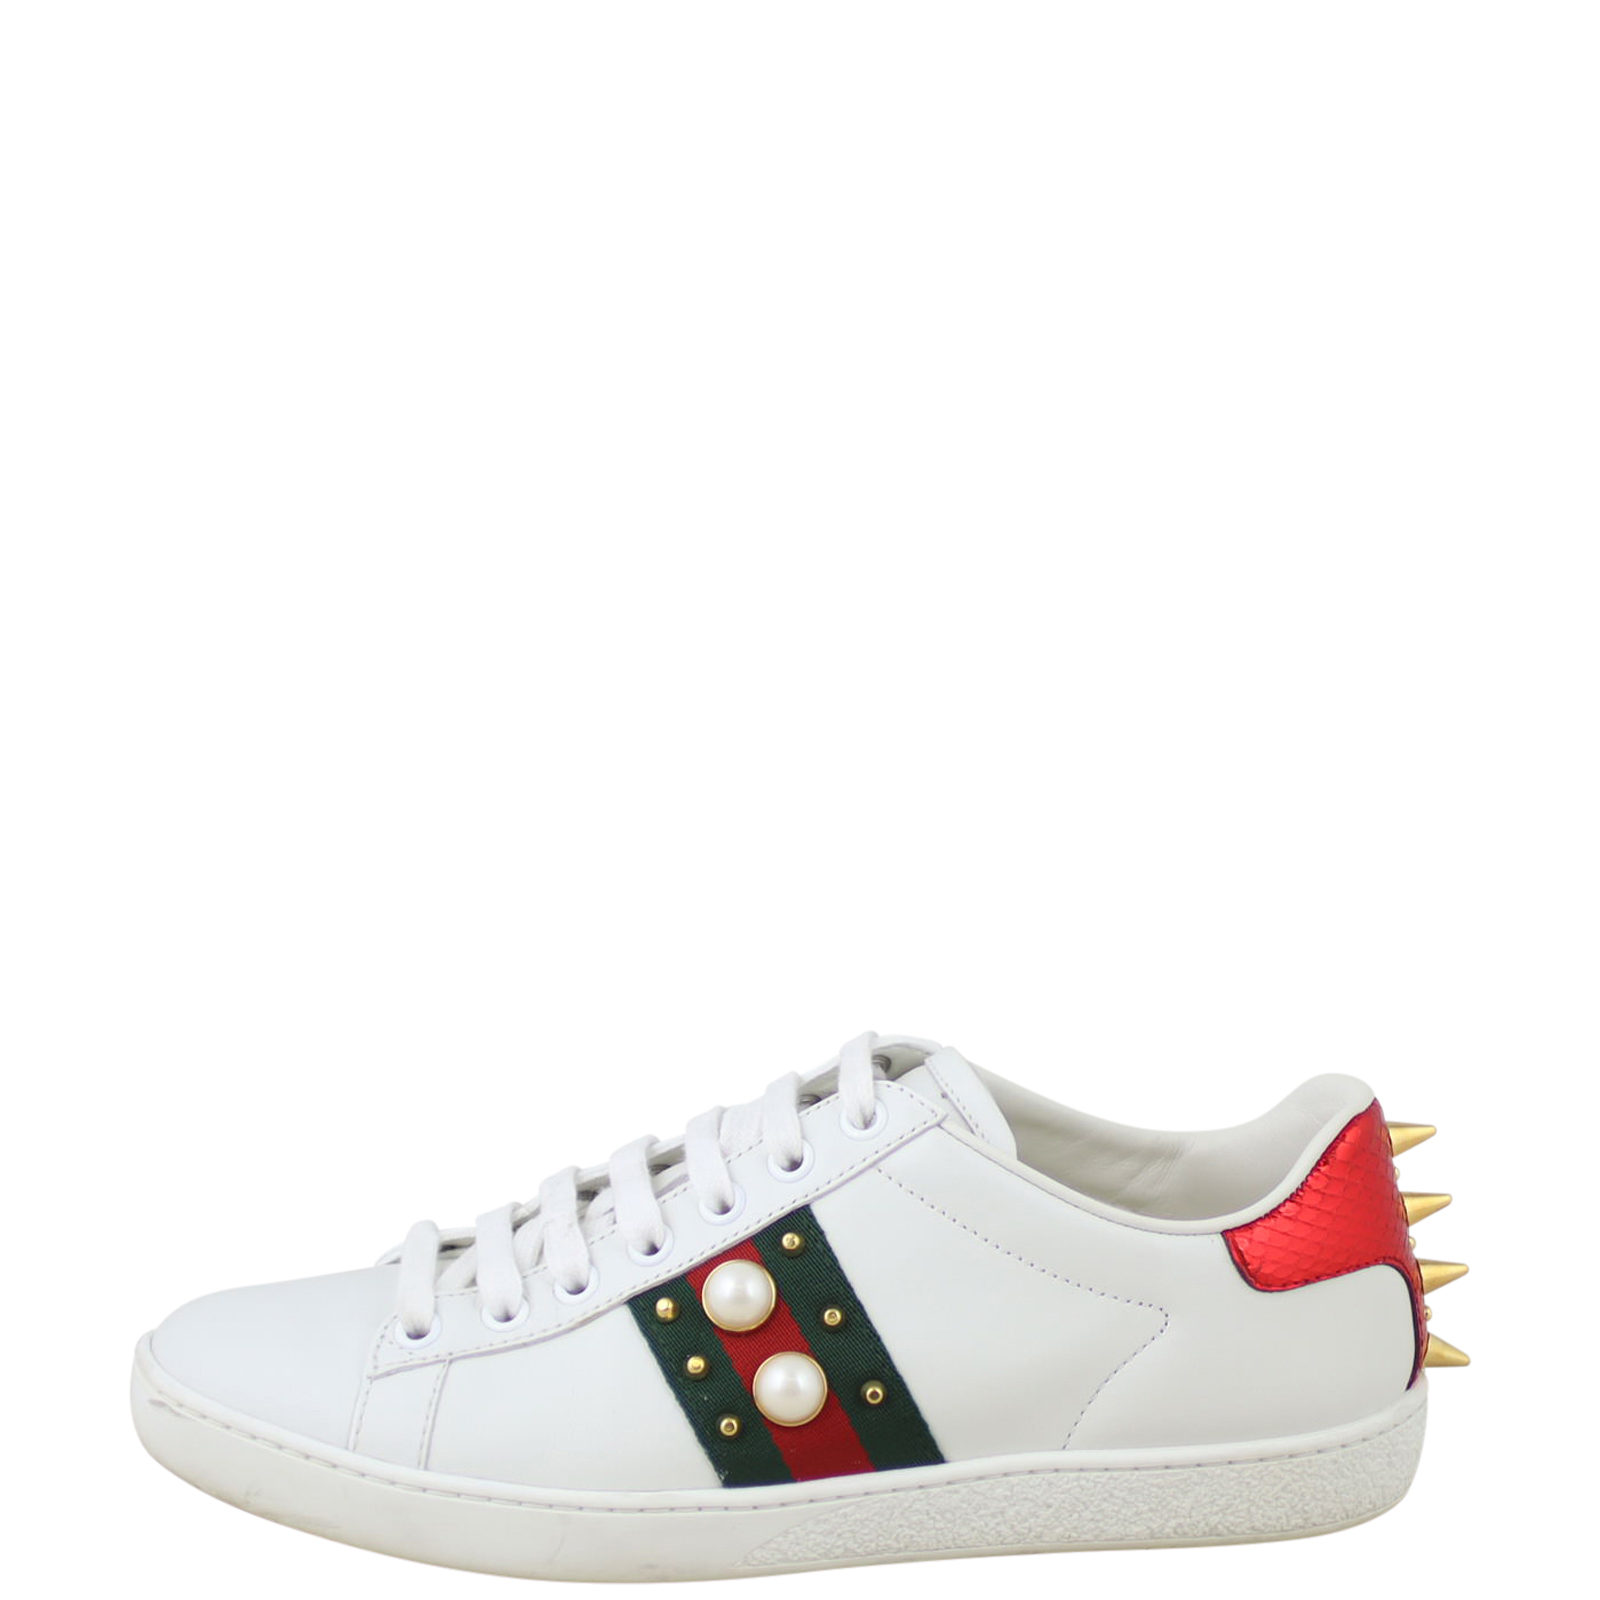 Authentic Gucci Ace Studded Leather